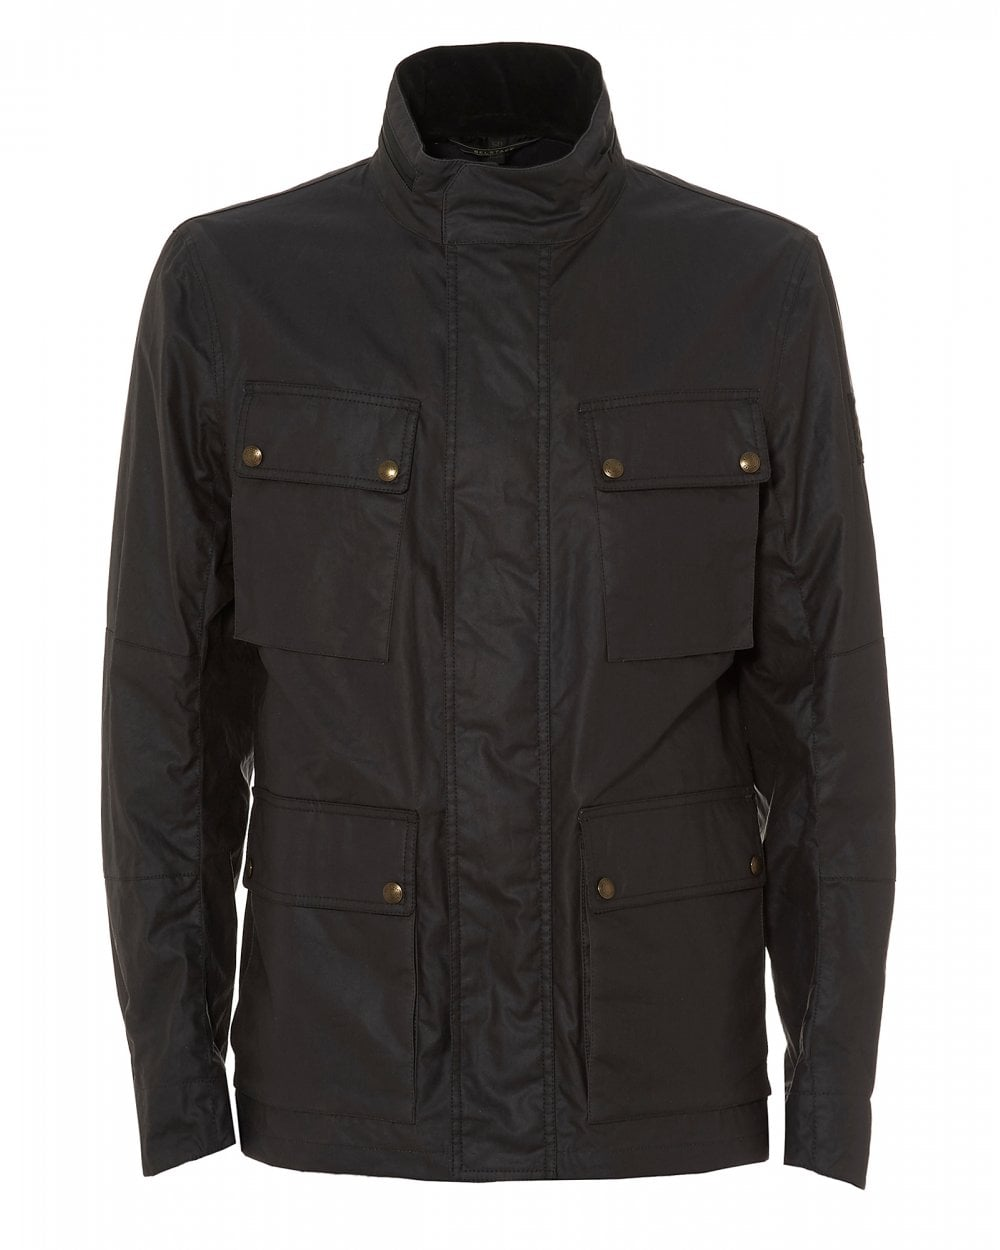 3b3f8bfbaf6f Belstaff Mens Explorer Waxed Jacket